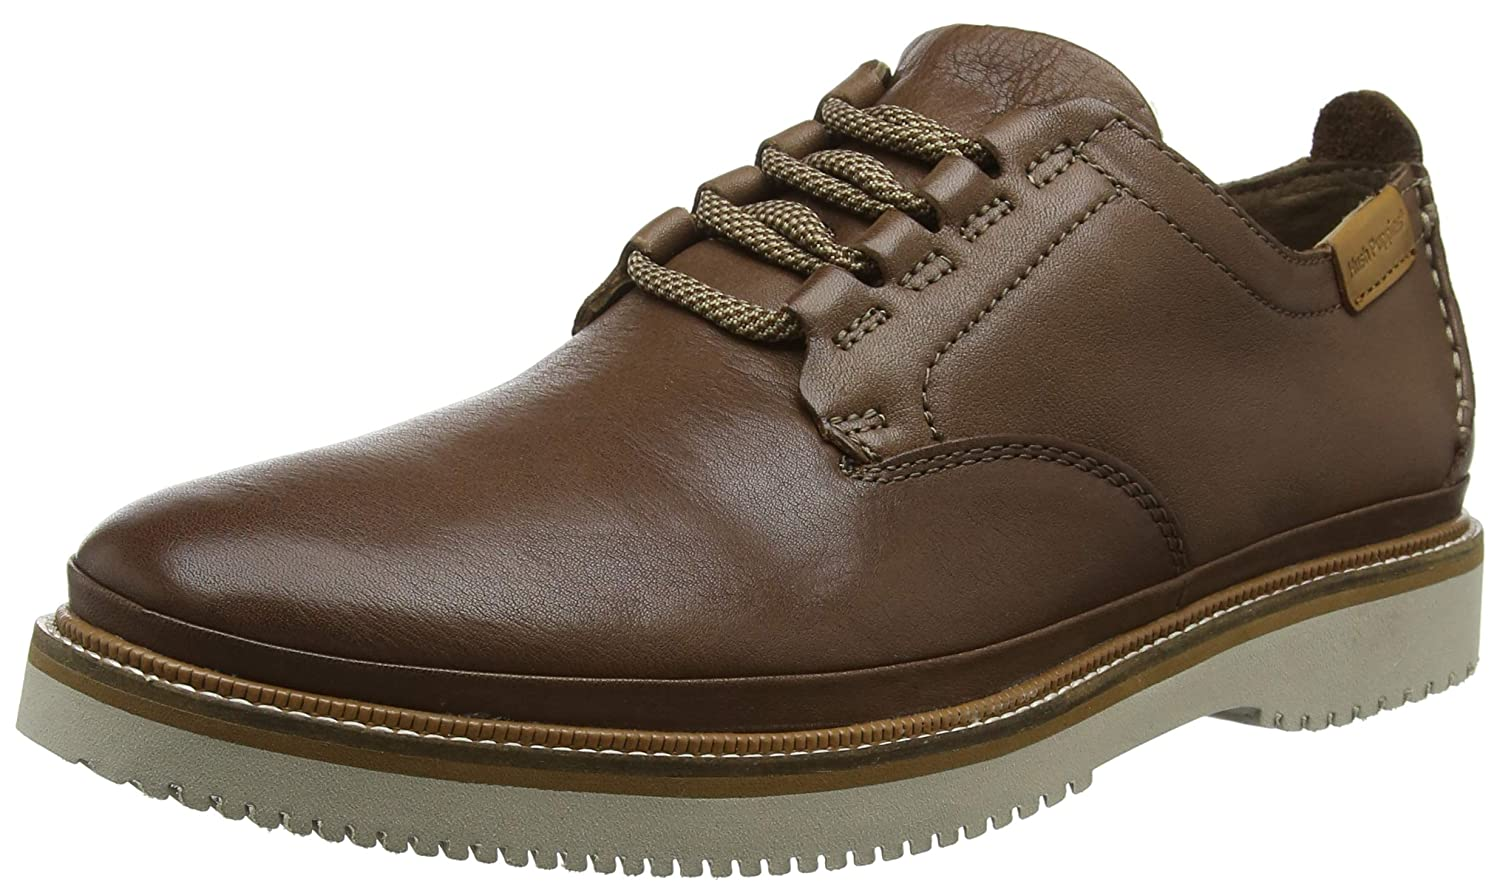 Hush Puppies Bernard Convertible, Zapatos de Cordones Oxford para Hombre